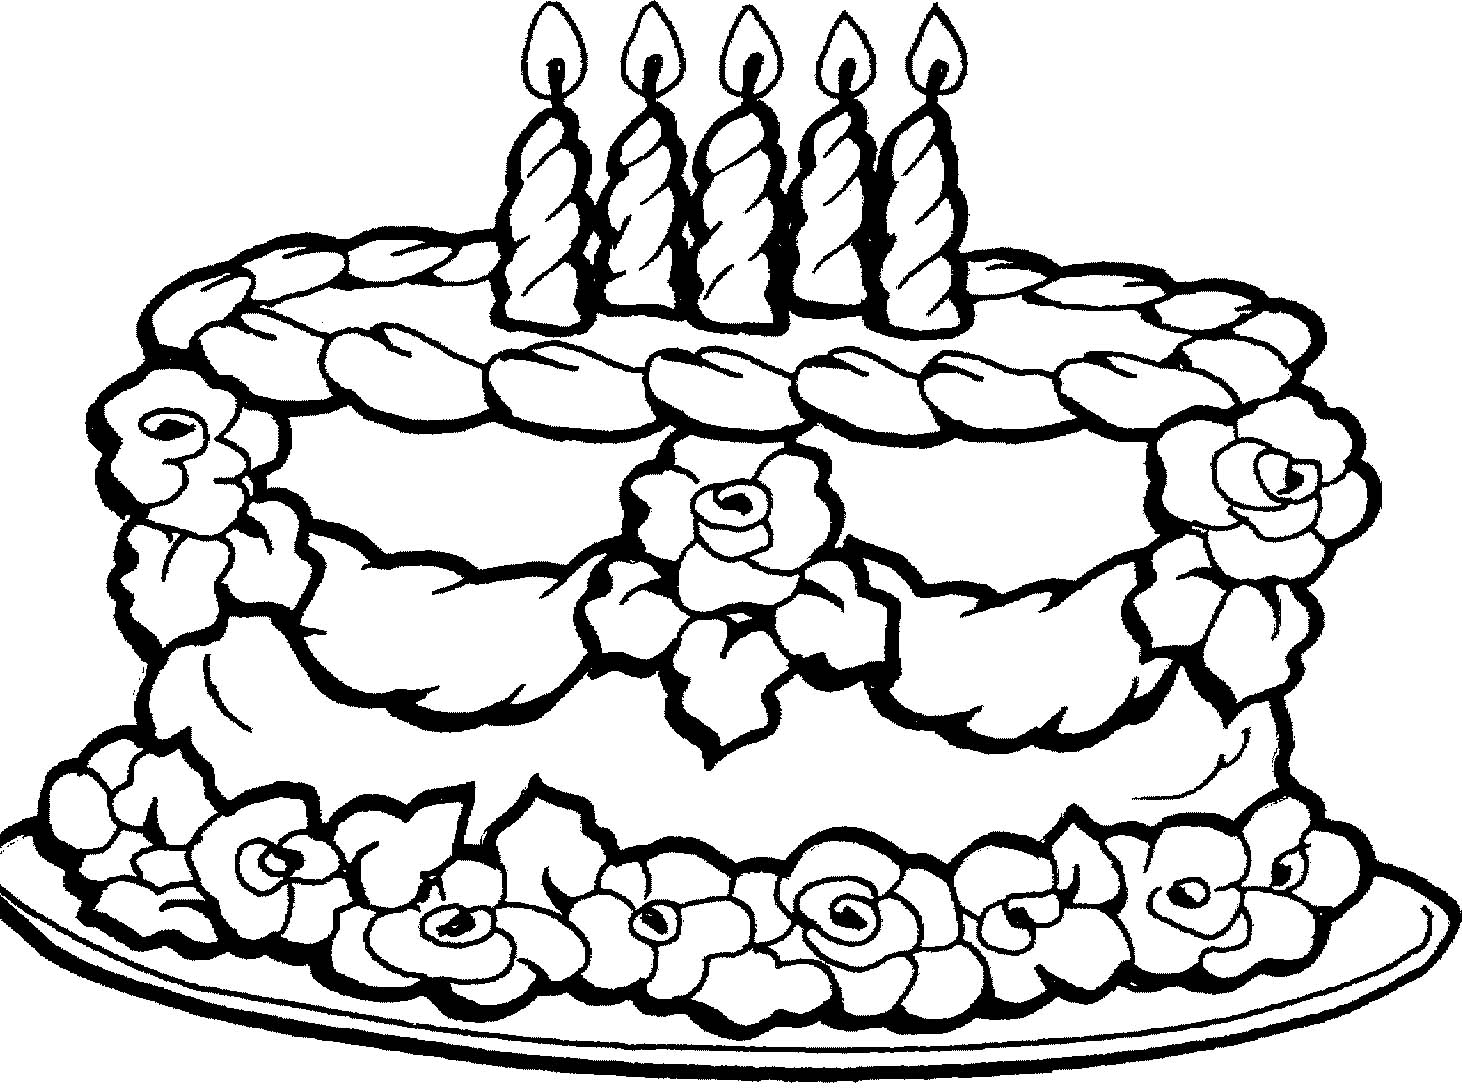 1462x1088 Birthday Cakes Images Black White Birthday Cake Coloring Page